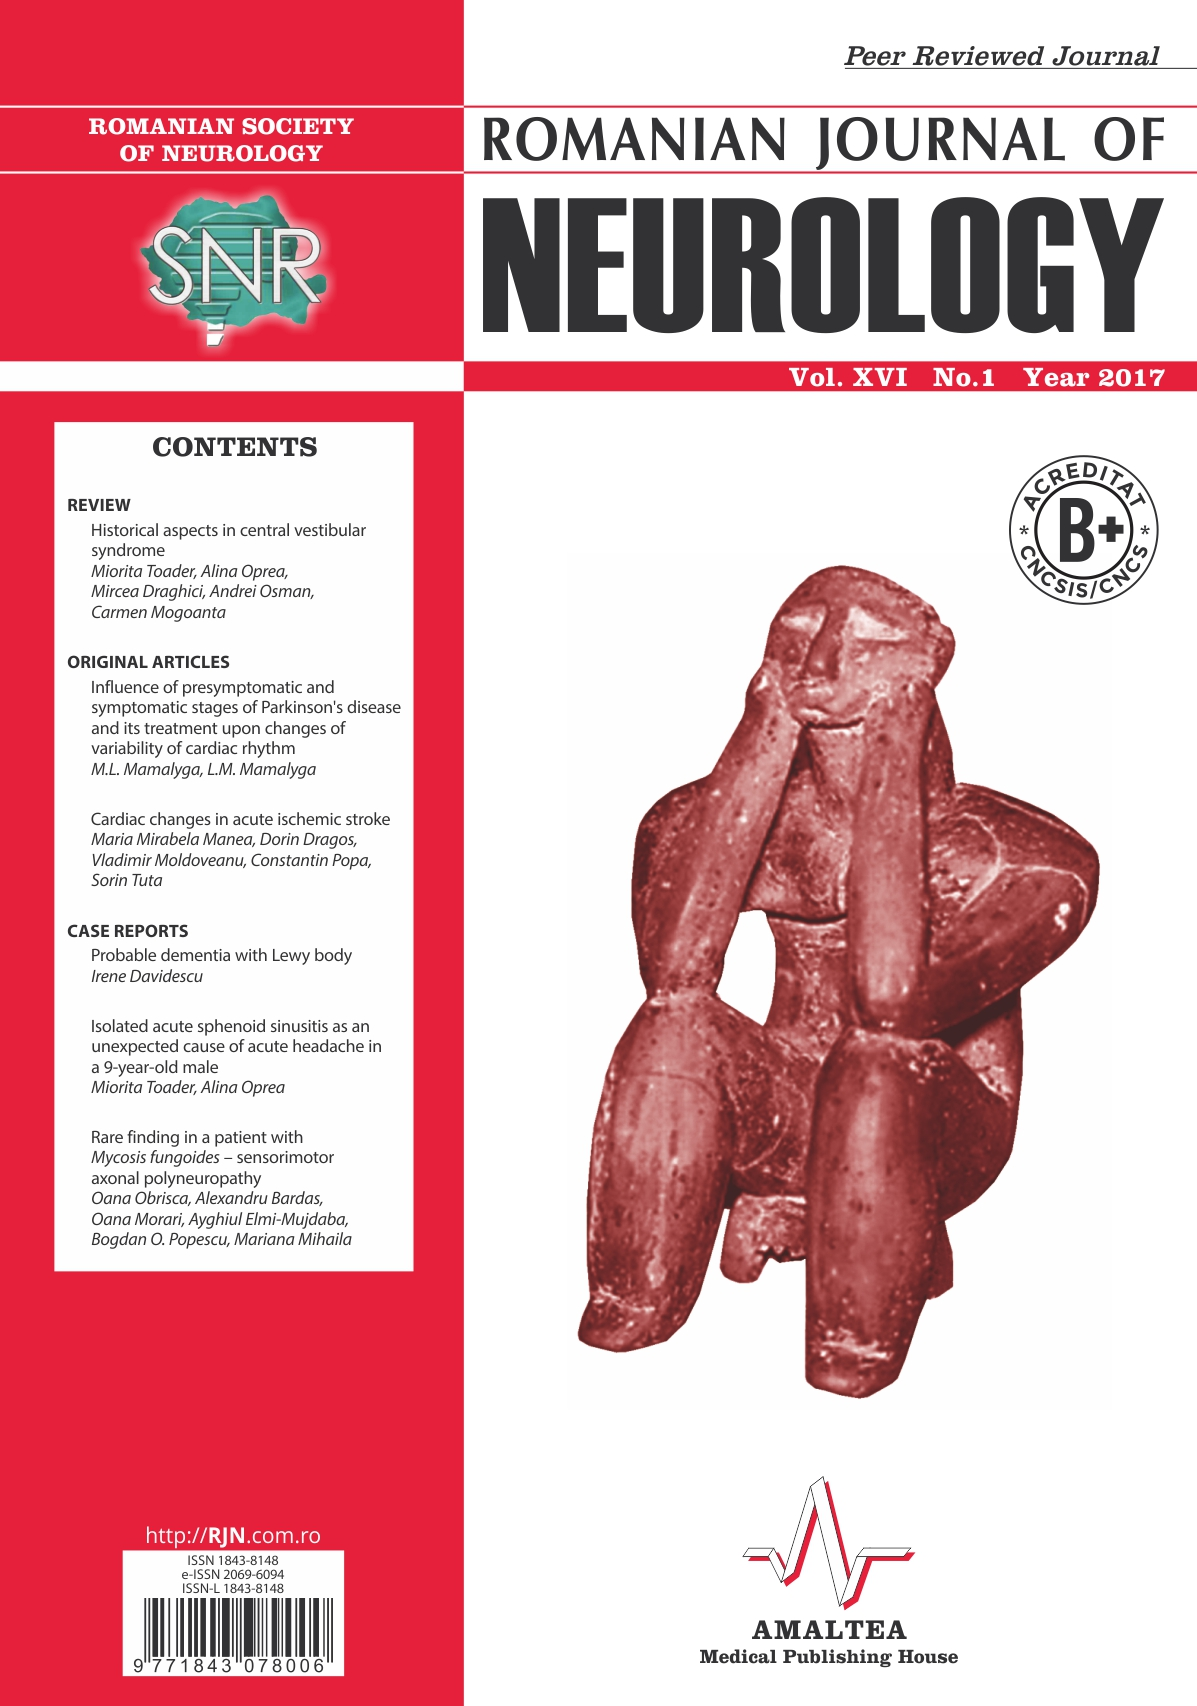 Romanian Journal of Neurology, Volume XVI, No. 1, 2017